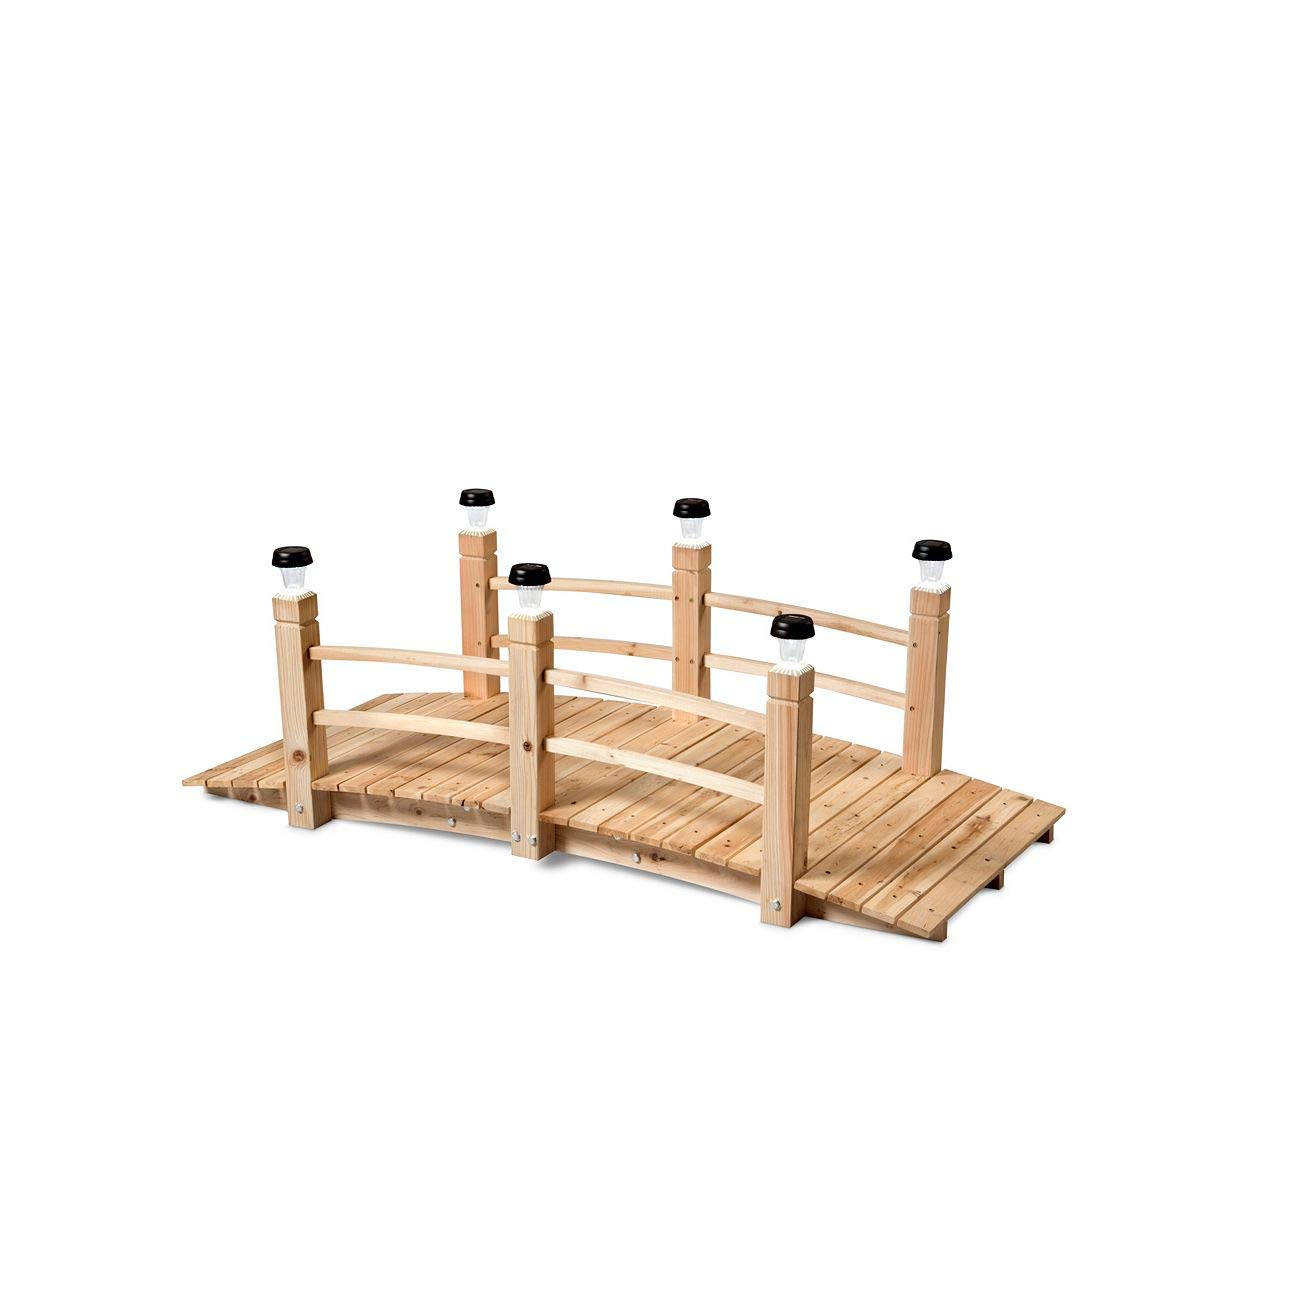 Improvements 5' Cedar Garden Bridge with Removable Plugs for Solar Lights (Solar Lights Not Included)